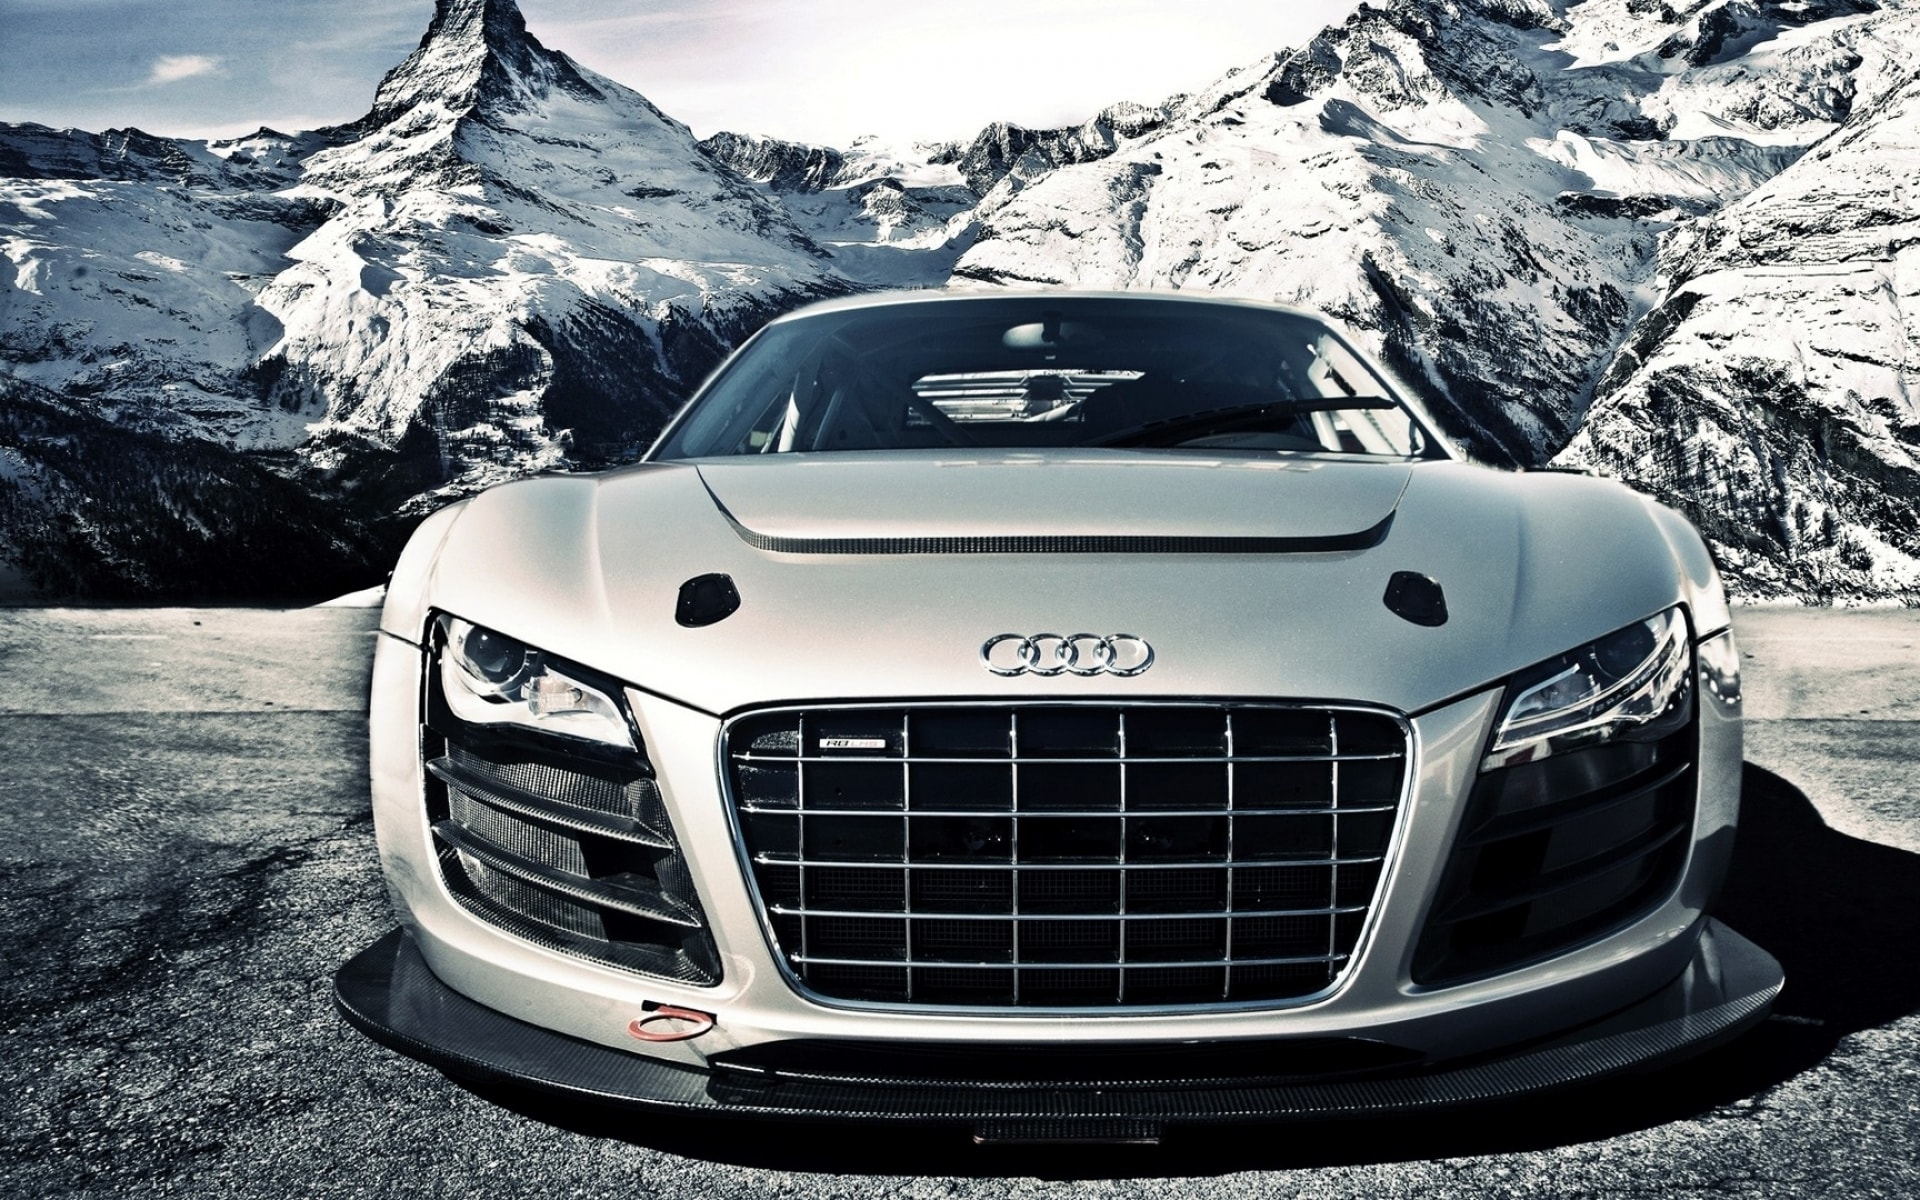 Audi R8 full hd wallpapers